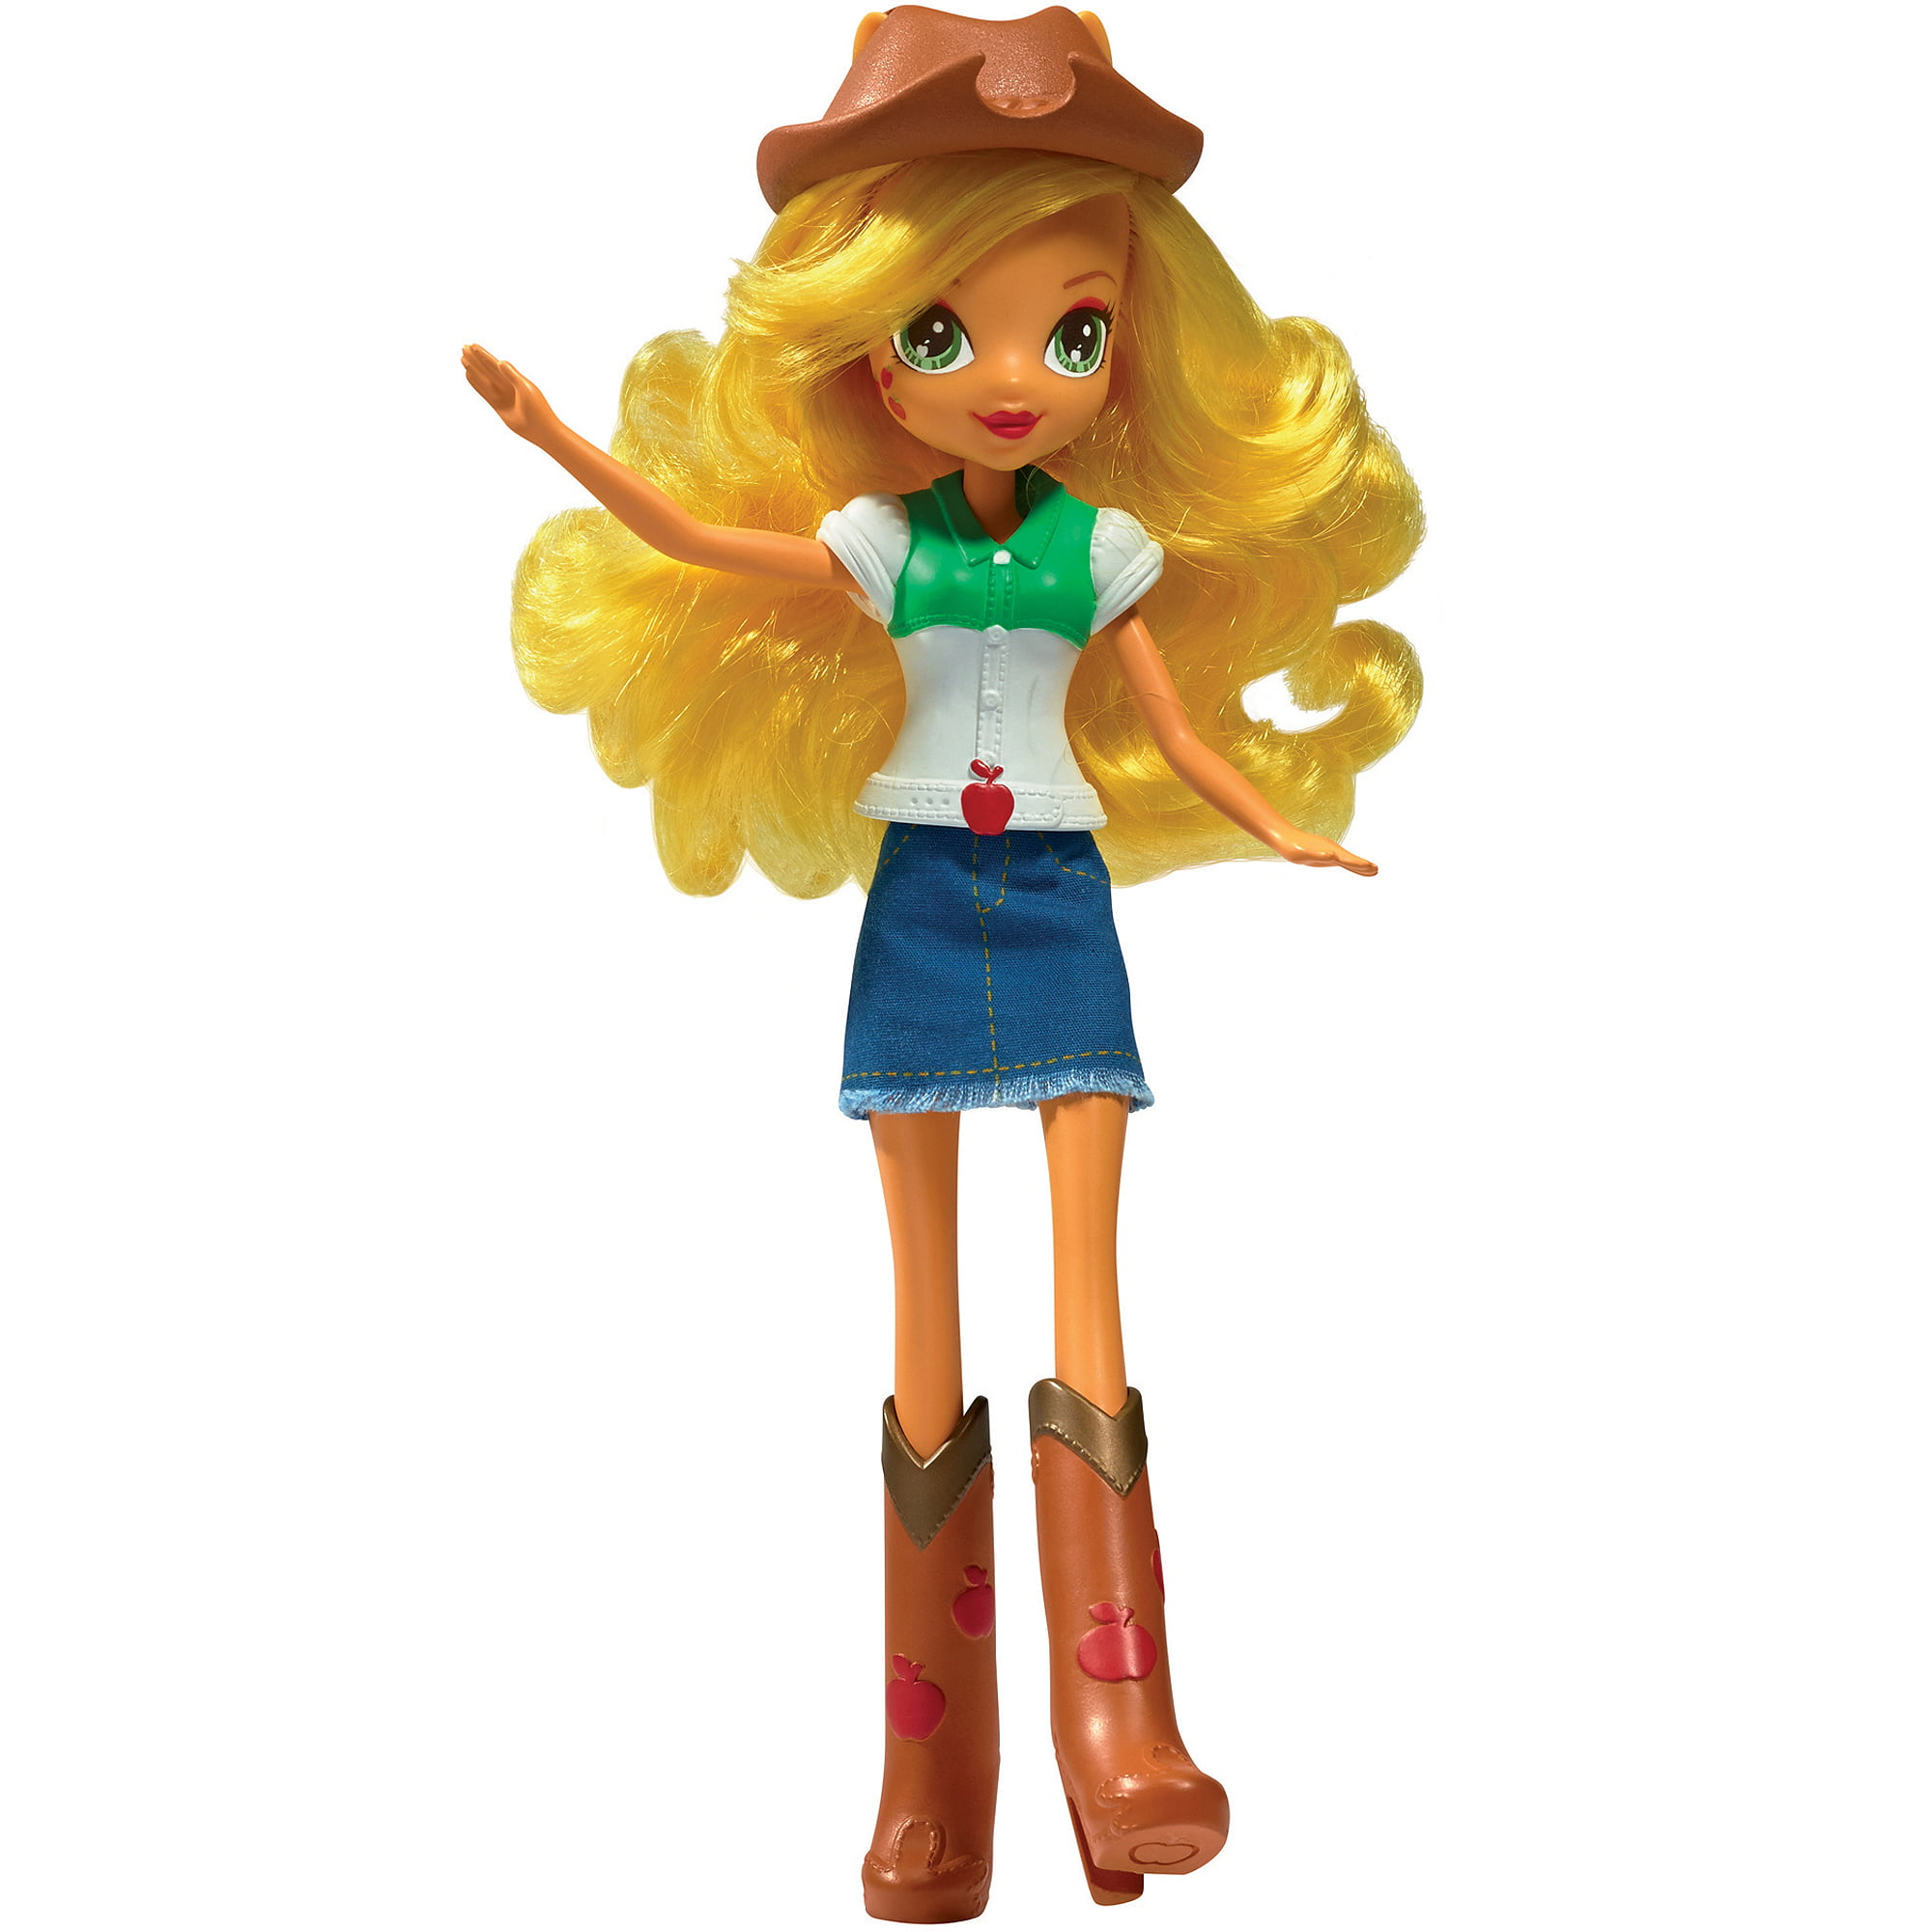 My Little Pony Equestria Girls Collection Applejack Doll  Walmartcom